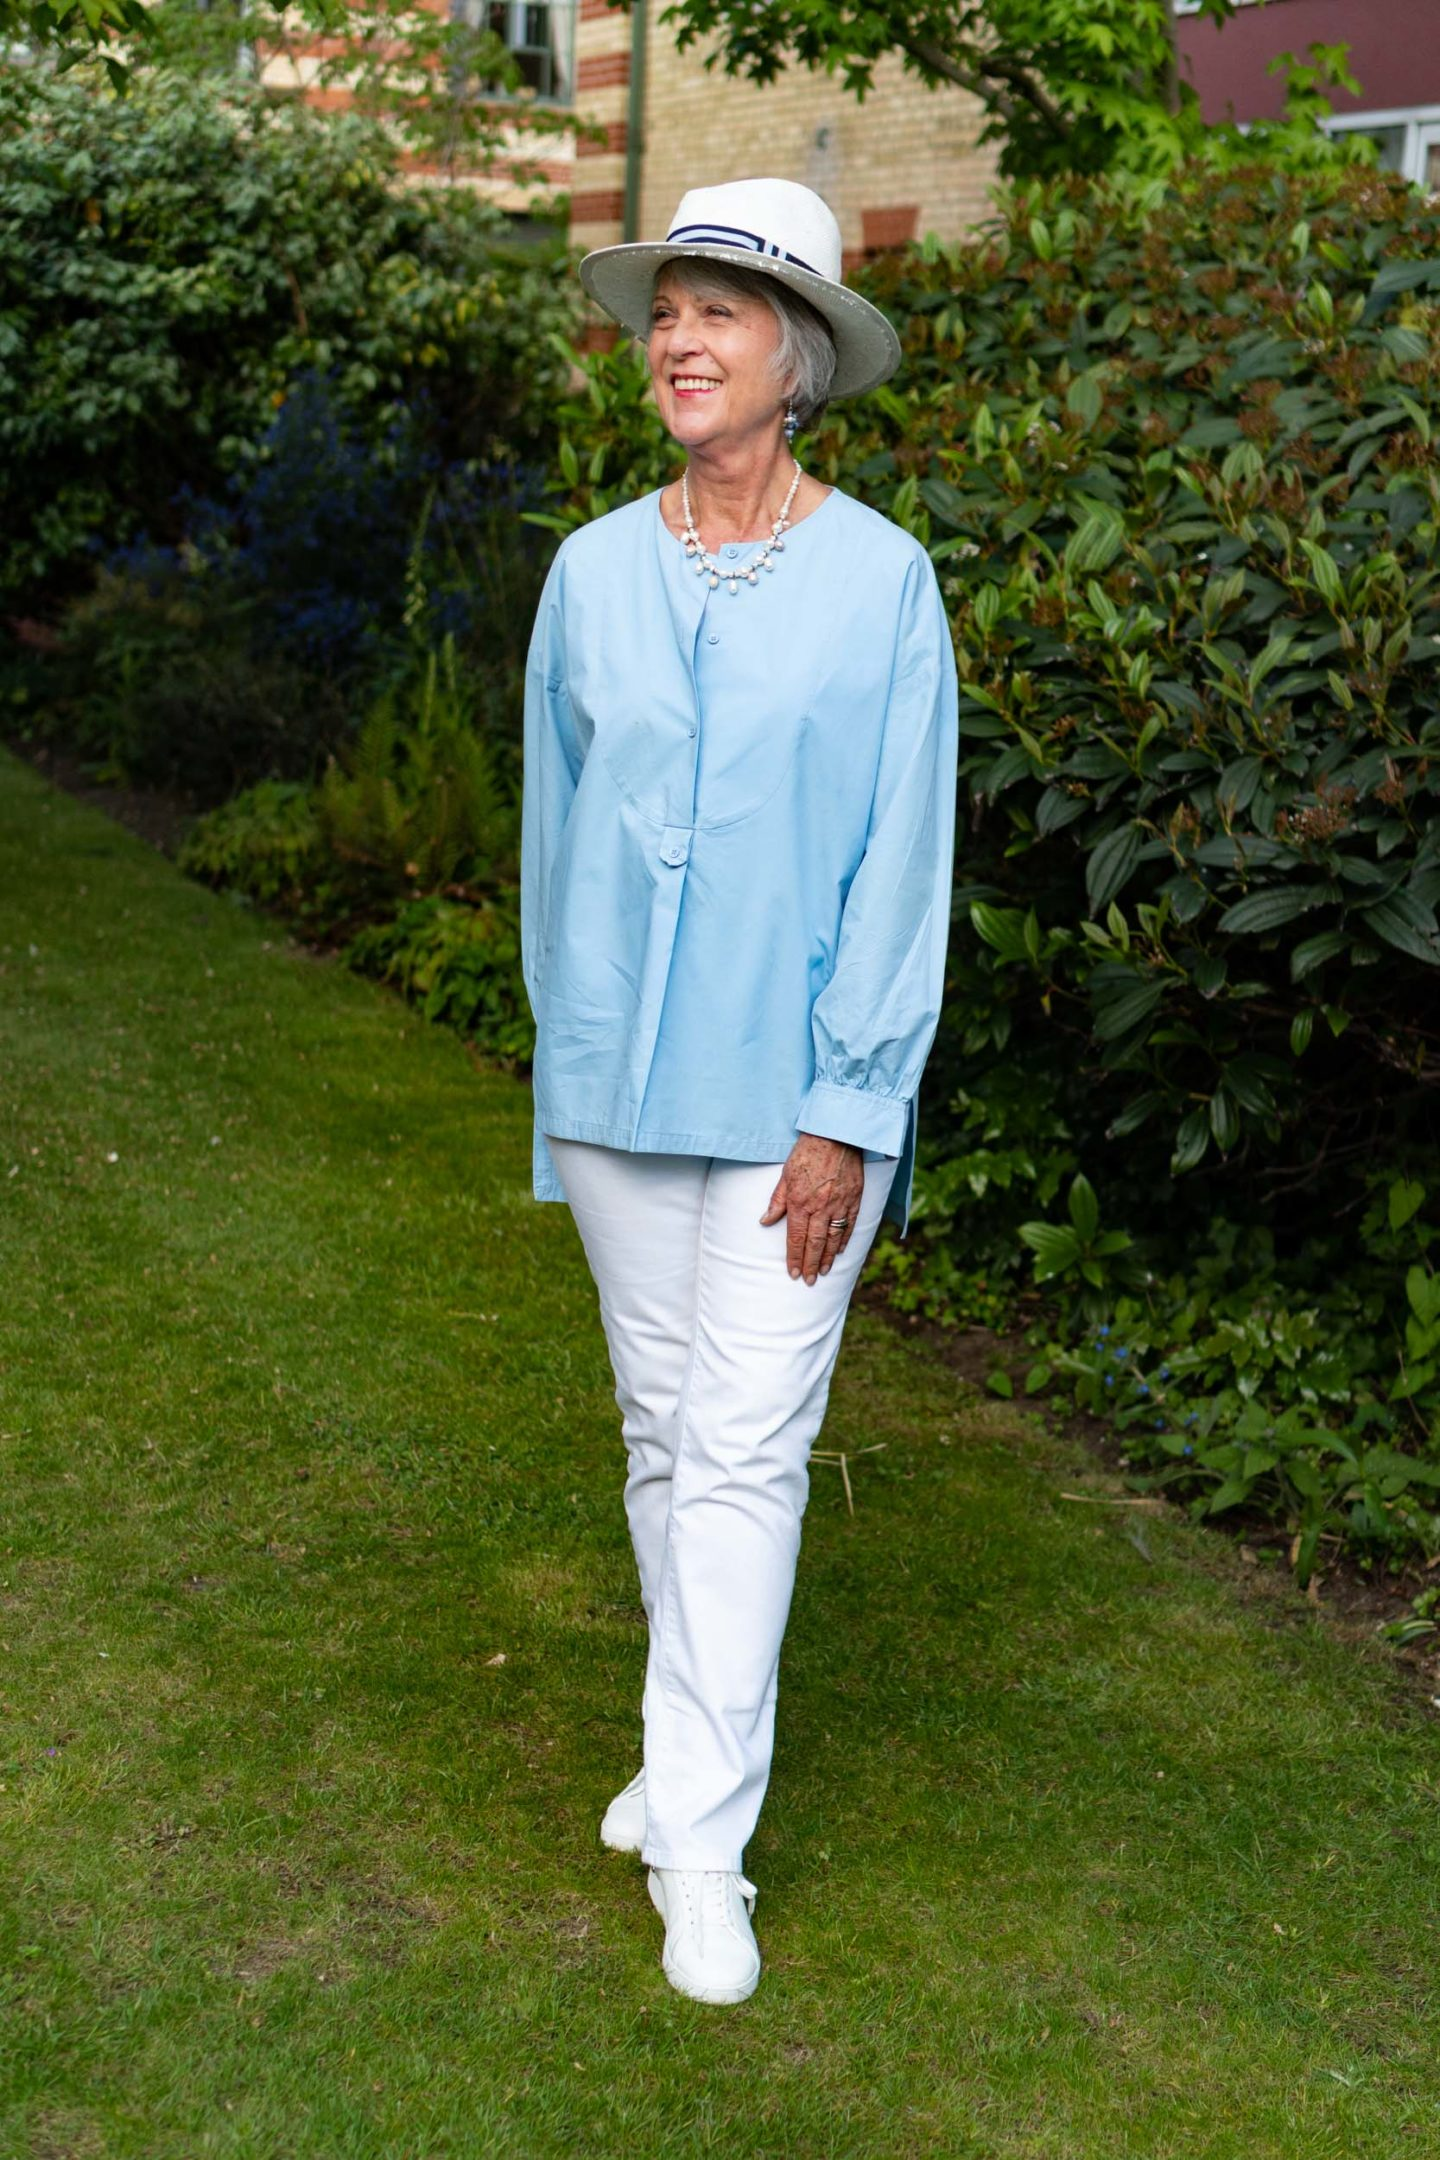 White jeans and blue cotton top